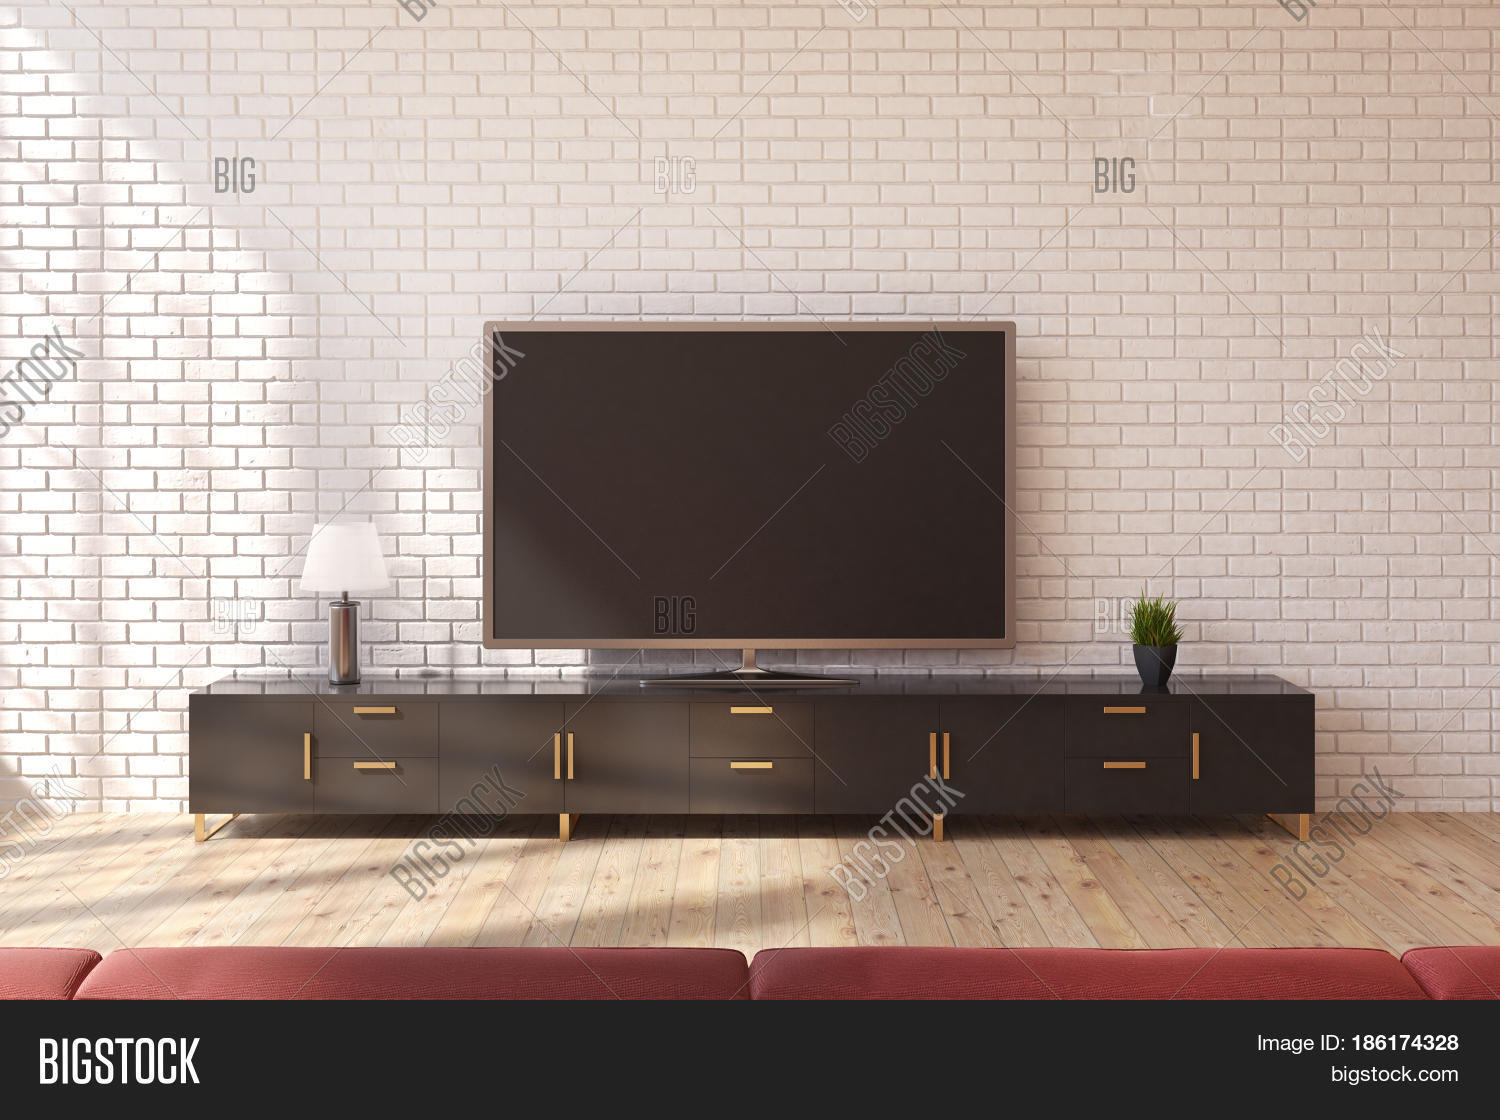 Minimalistic Living Image Photo Free Trial Bigstock